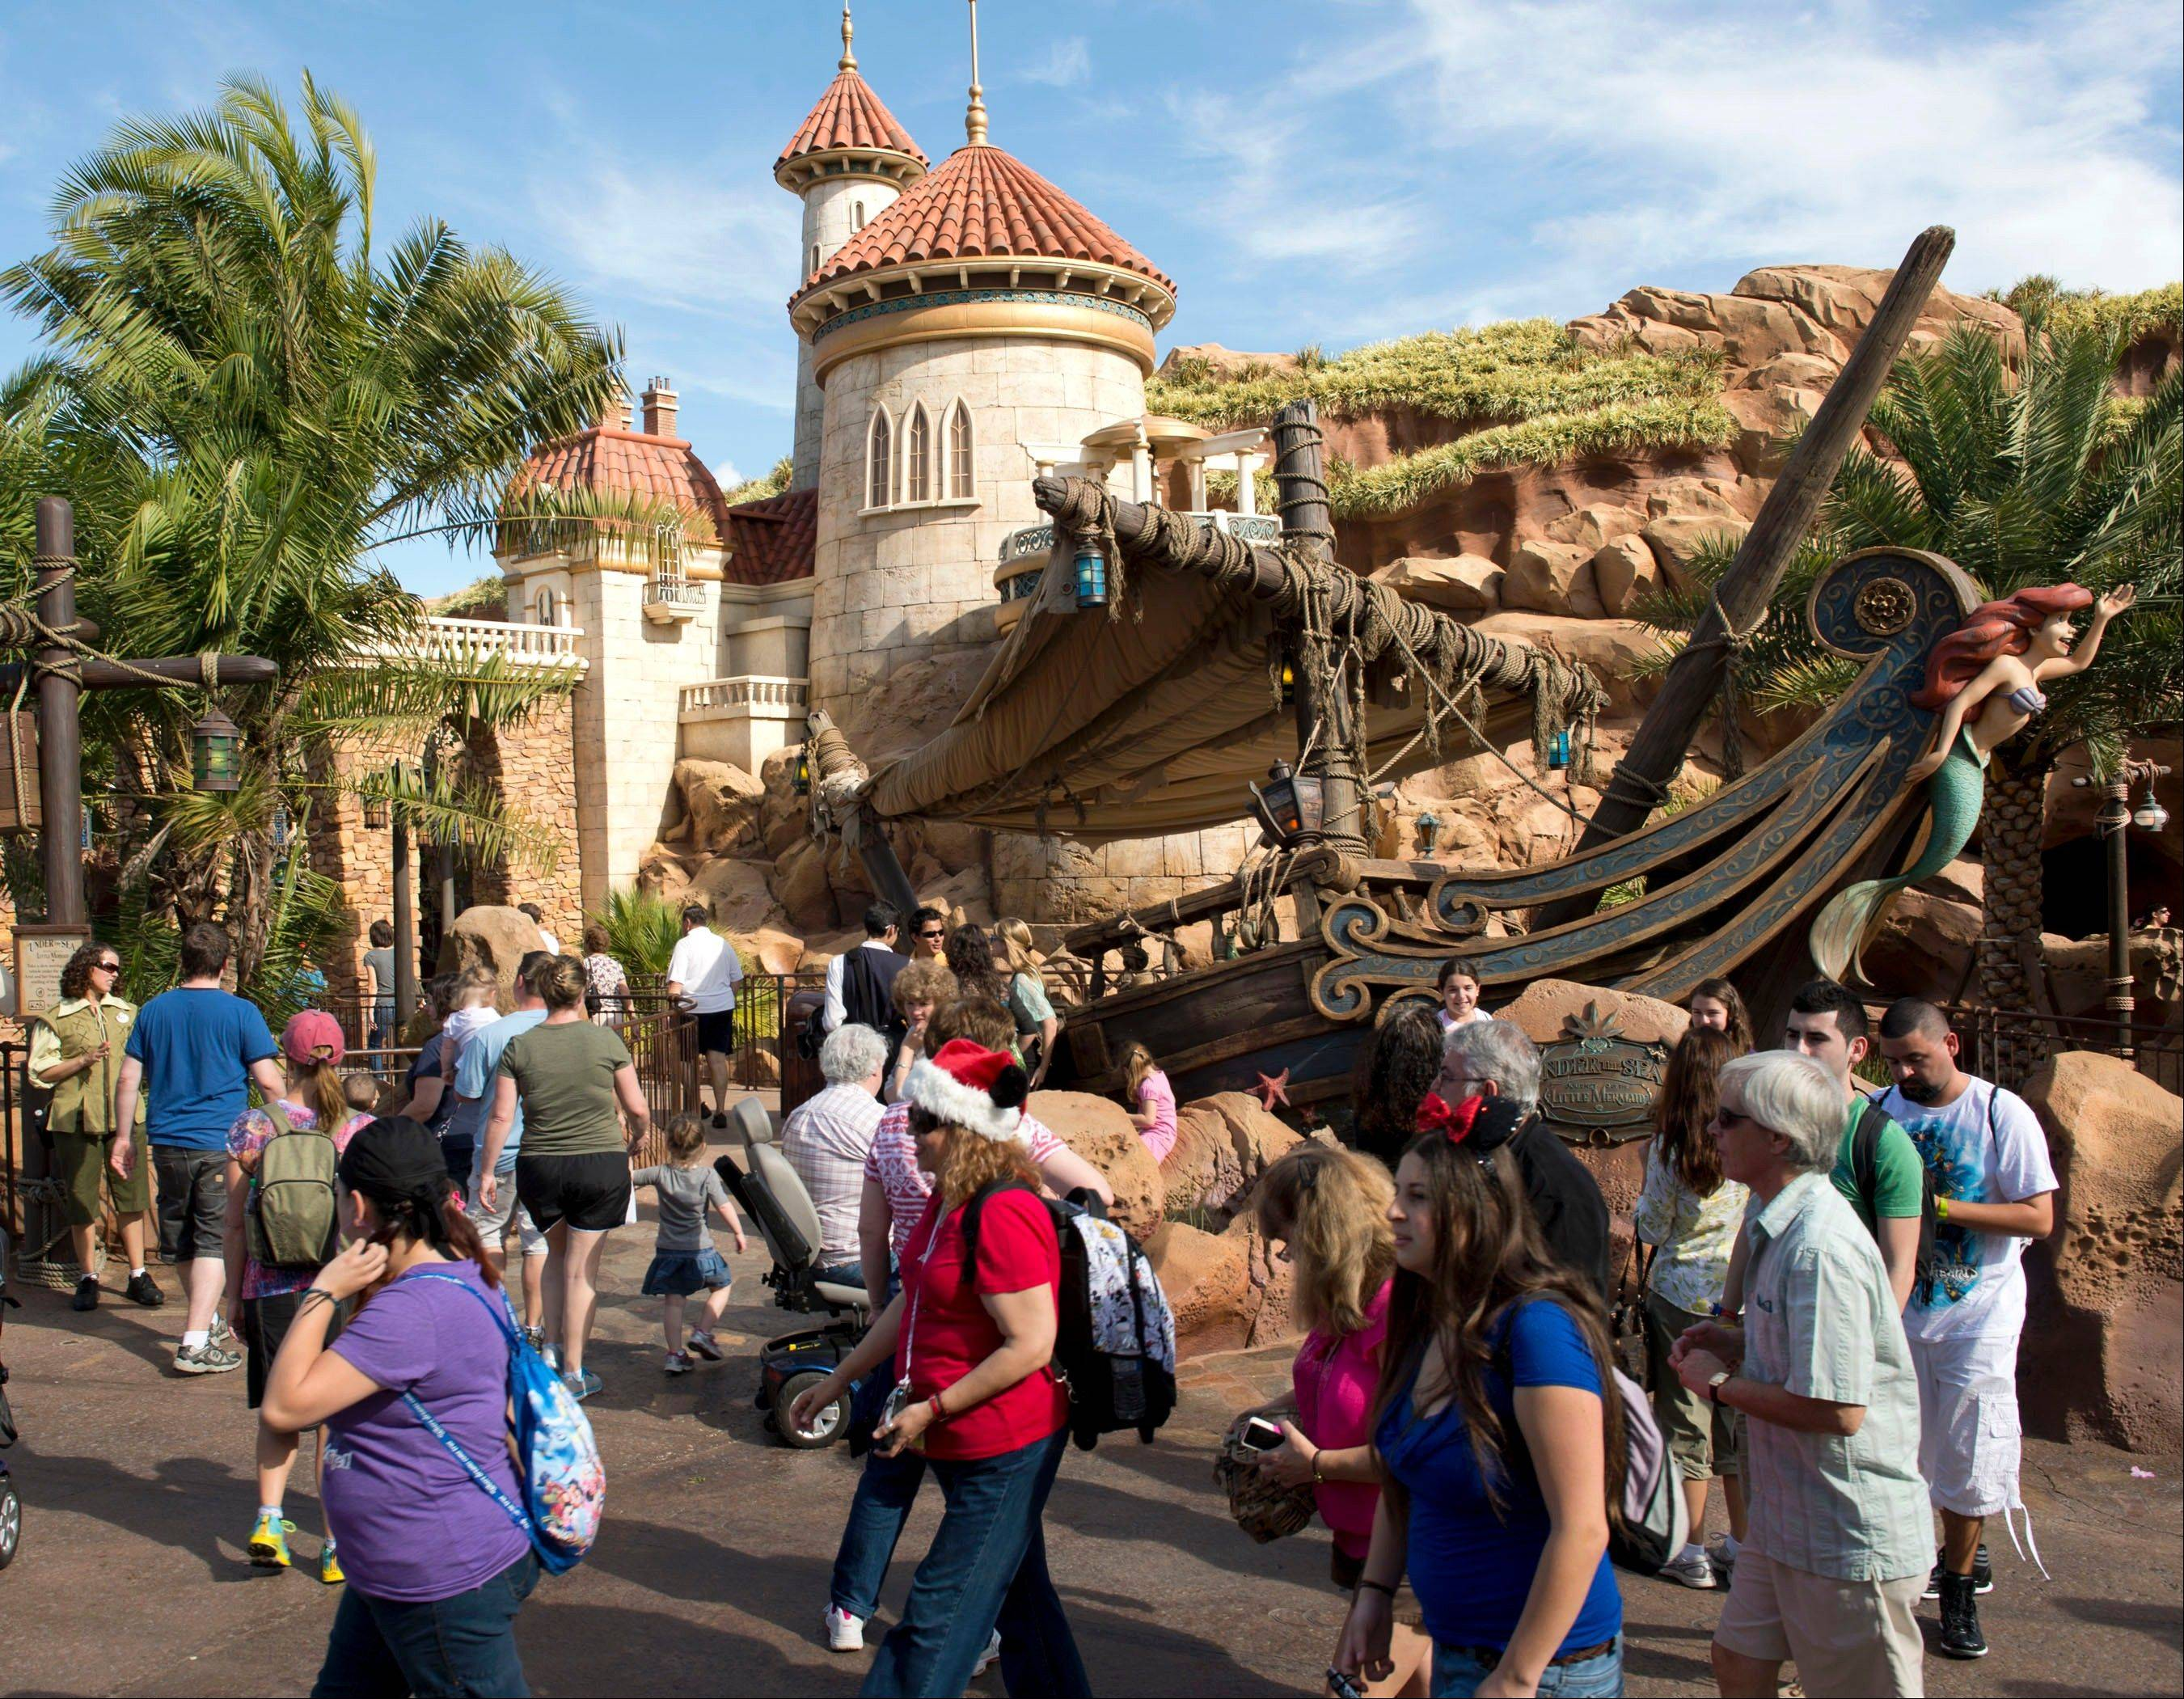 Visitors enjoy the Under the Sea: Journey of the Little Mermaid attraction following the grand opening of the New Fantasyland at Walt Disney World Resort in Lake Buena Vista, Fla. It's the largest expansion project in the park's 41-year history.